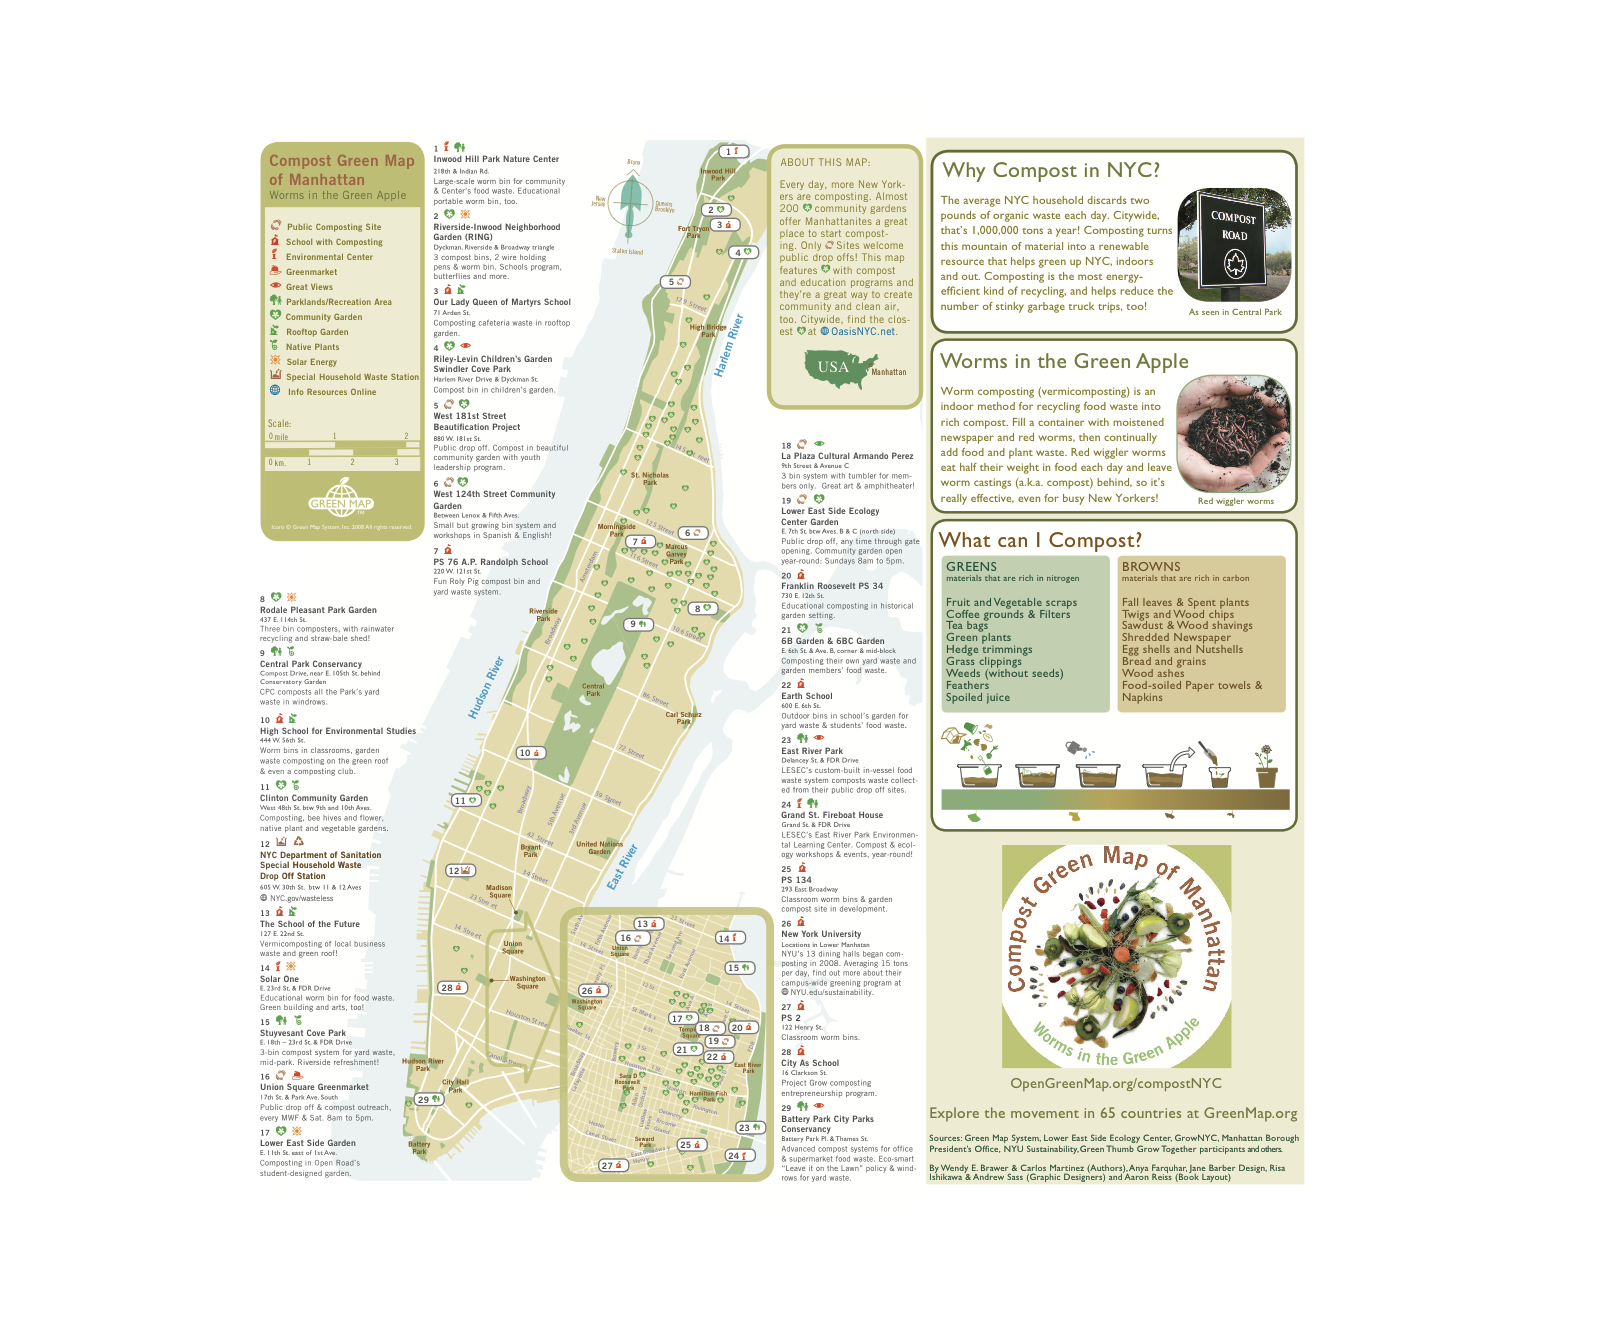 The Composting Green Map helped triple Manhattan's composting rate and raise the status of this climate-savvy practice